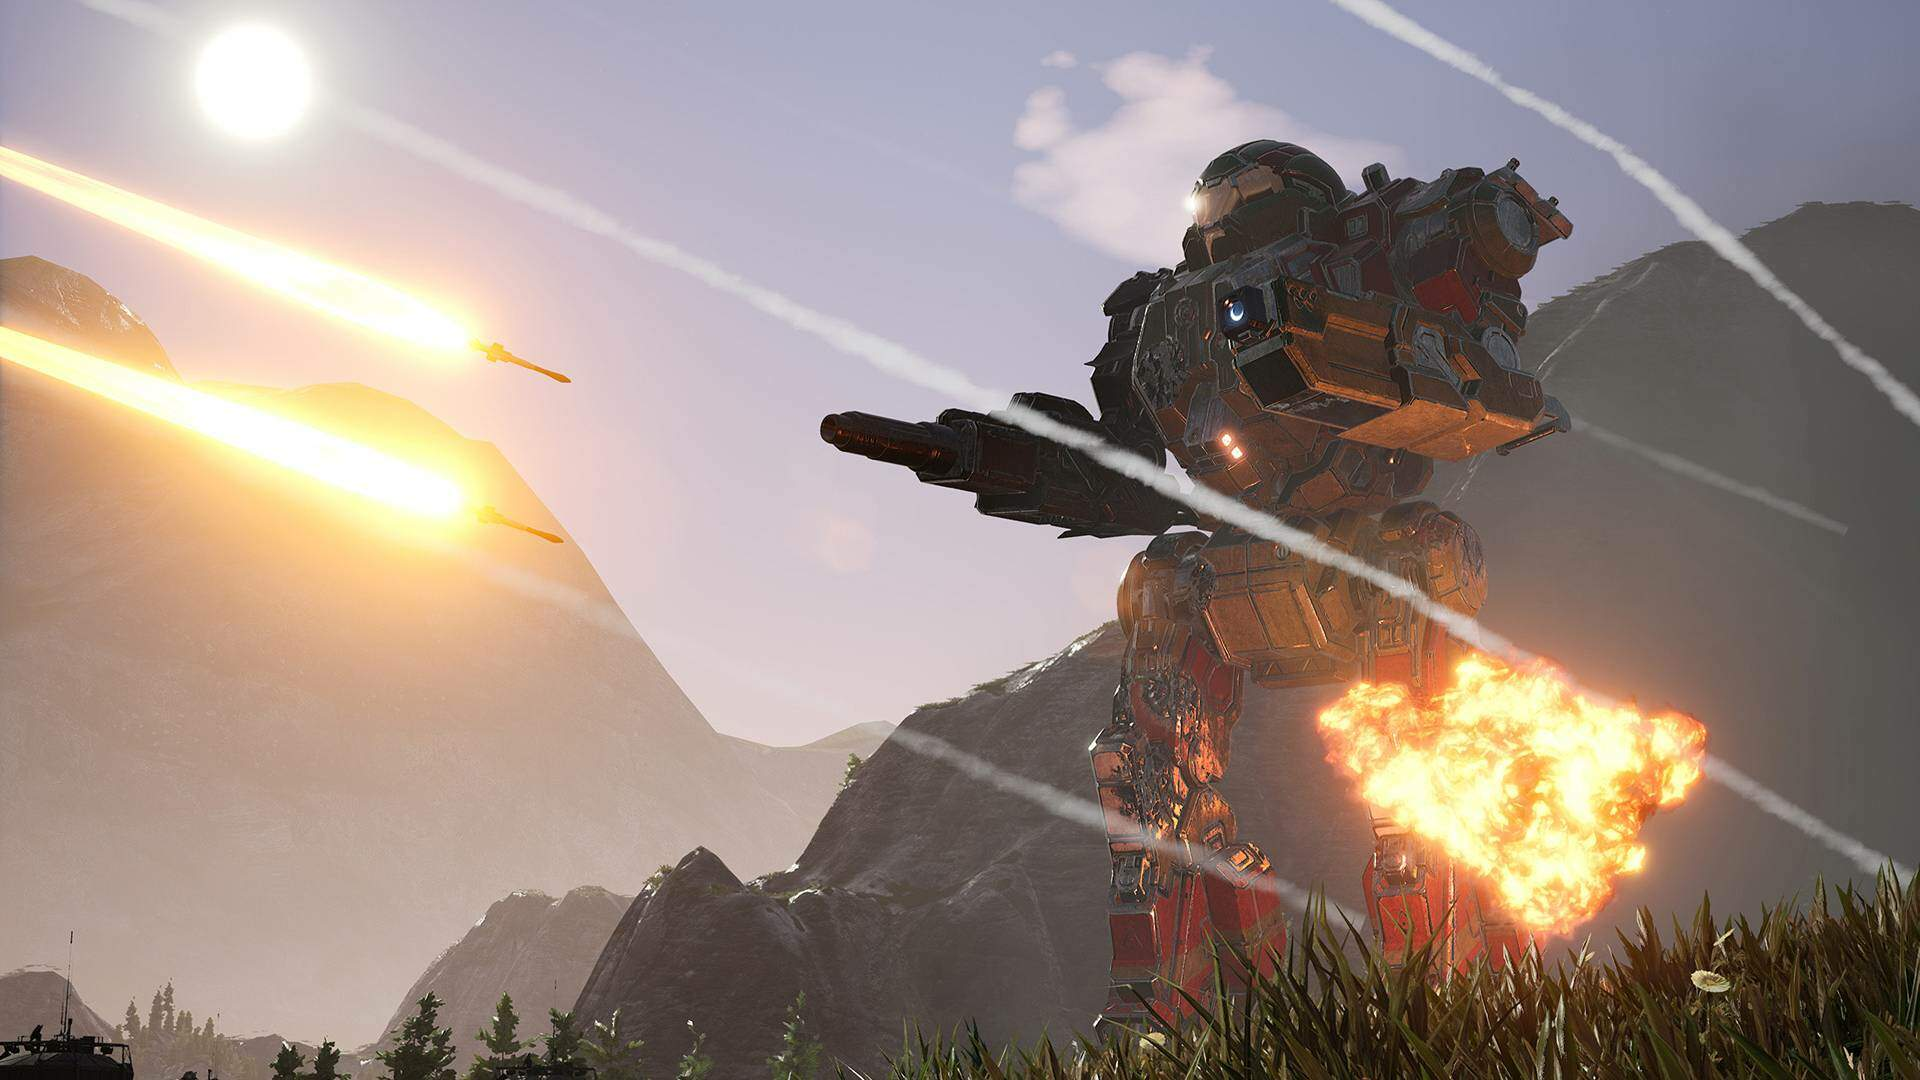 MechWarrior 5 Dev Says Timed Epic Exclusivity Is About Visibility